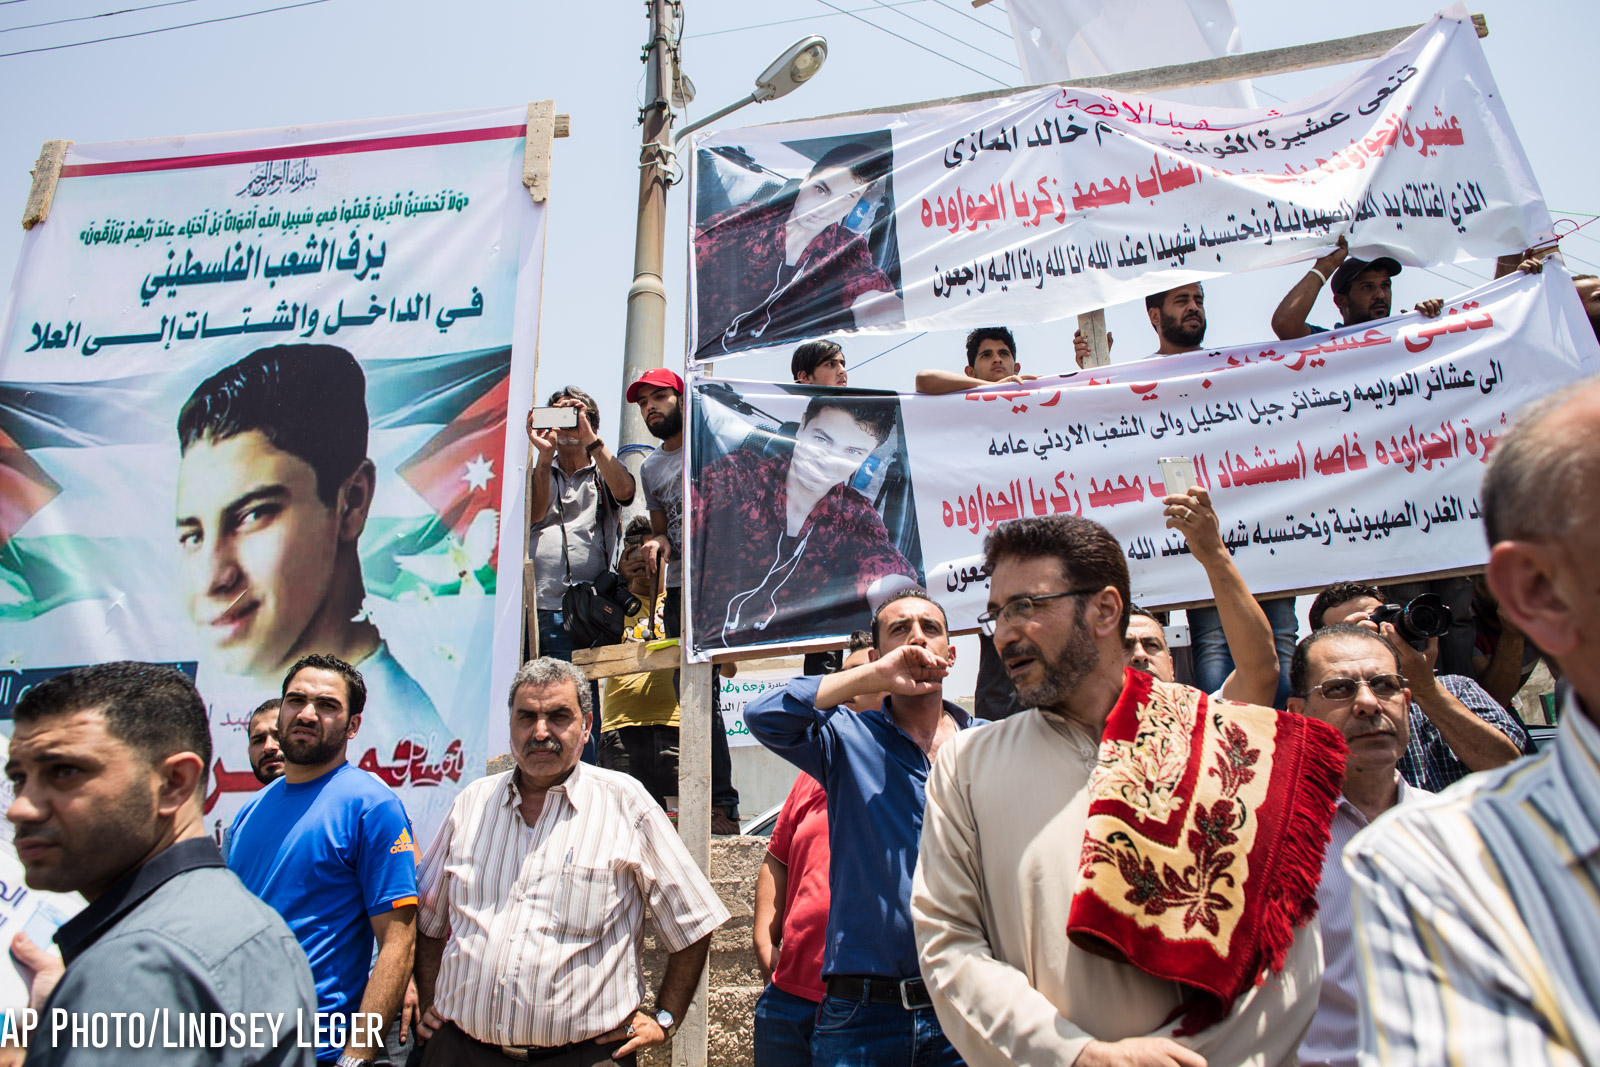 Placards are seen at the funeral of Mohammed al-Jawawdeh, a 17-year-old Jordanian, who was killed on Sunday evening by an Israeli security guard who said he was attacked by him with a screwdriver, on Tuesday, July 25, 2017 in Amman, Jordan. (AP Photo/Lindsey Leger)